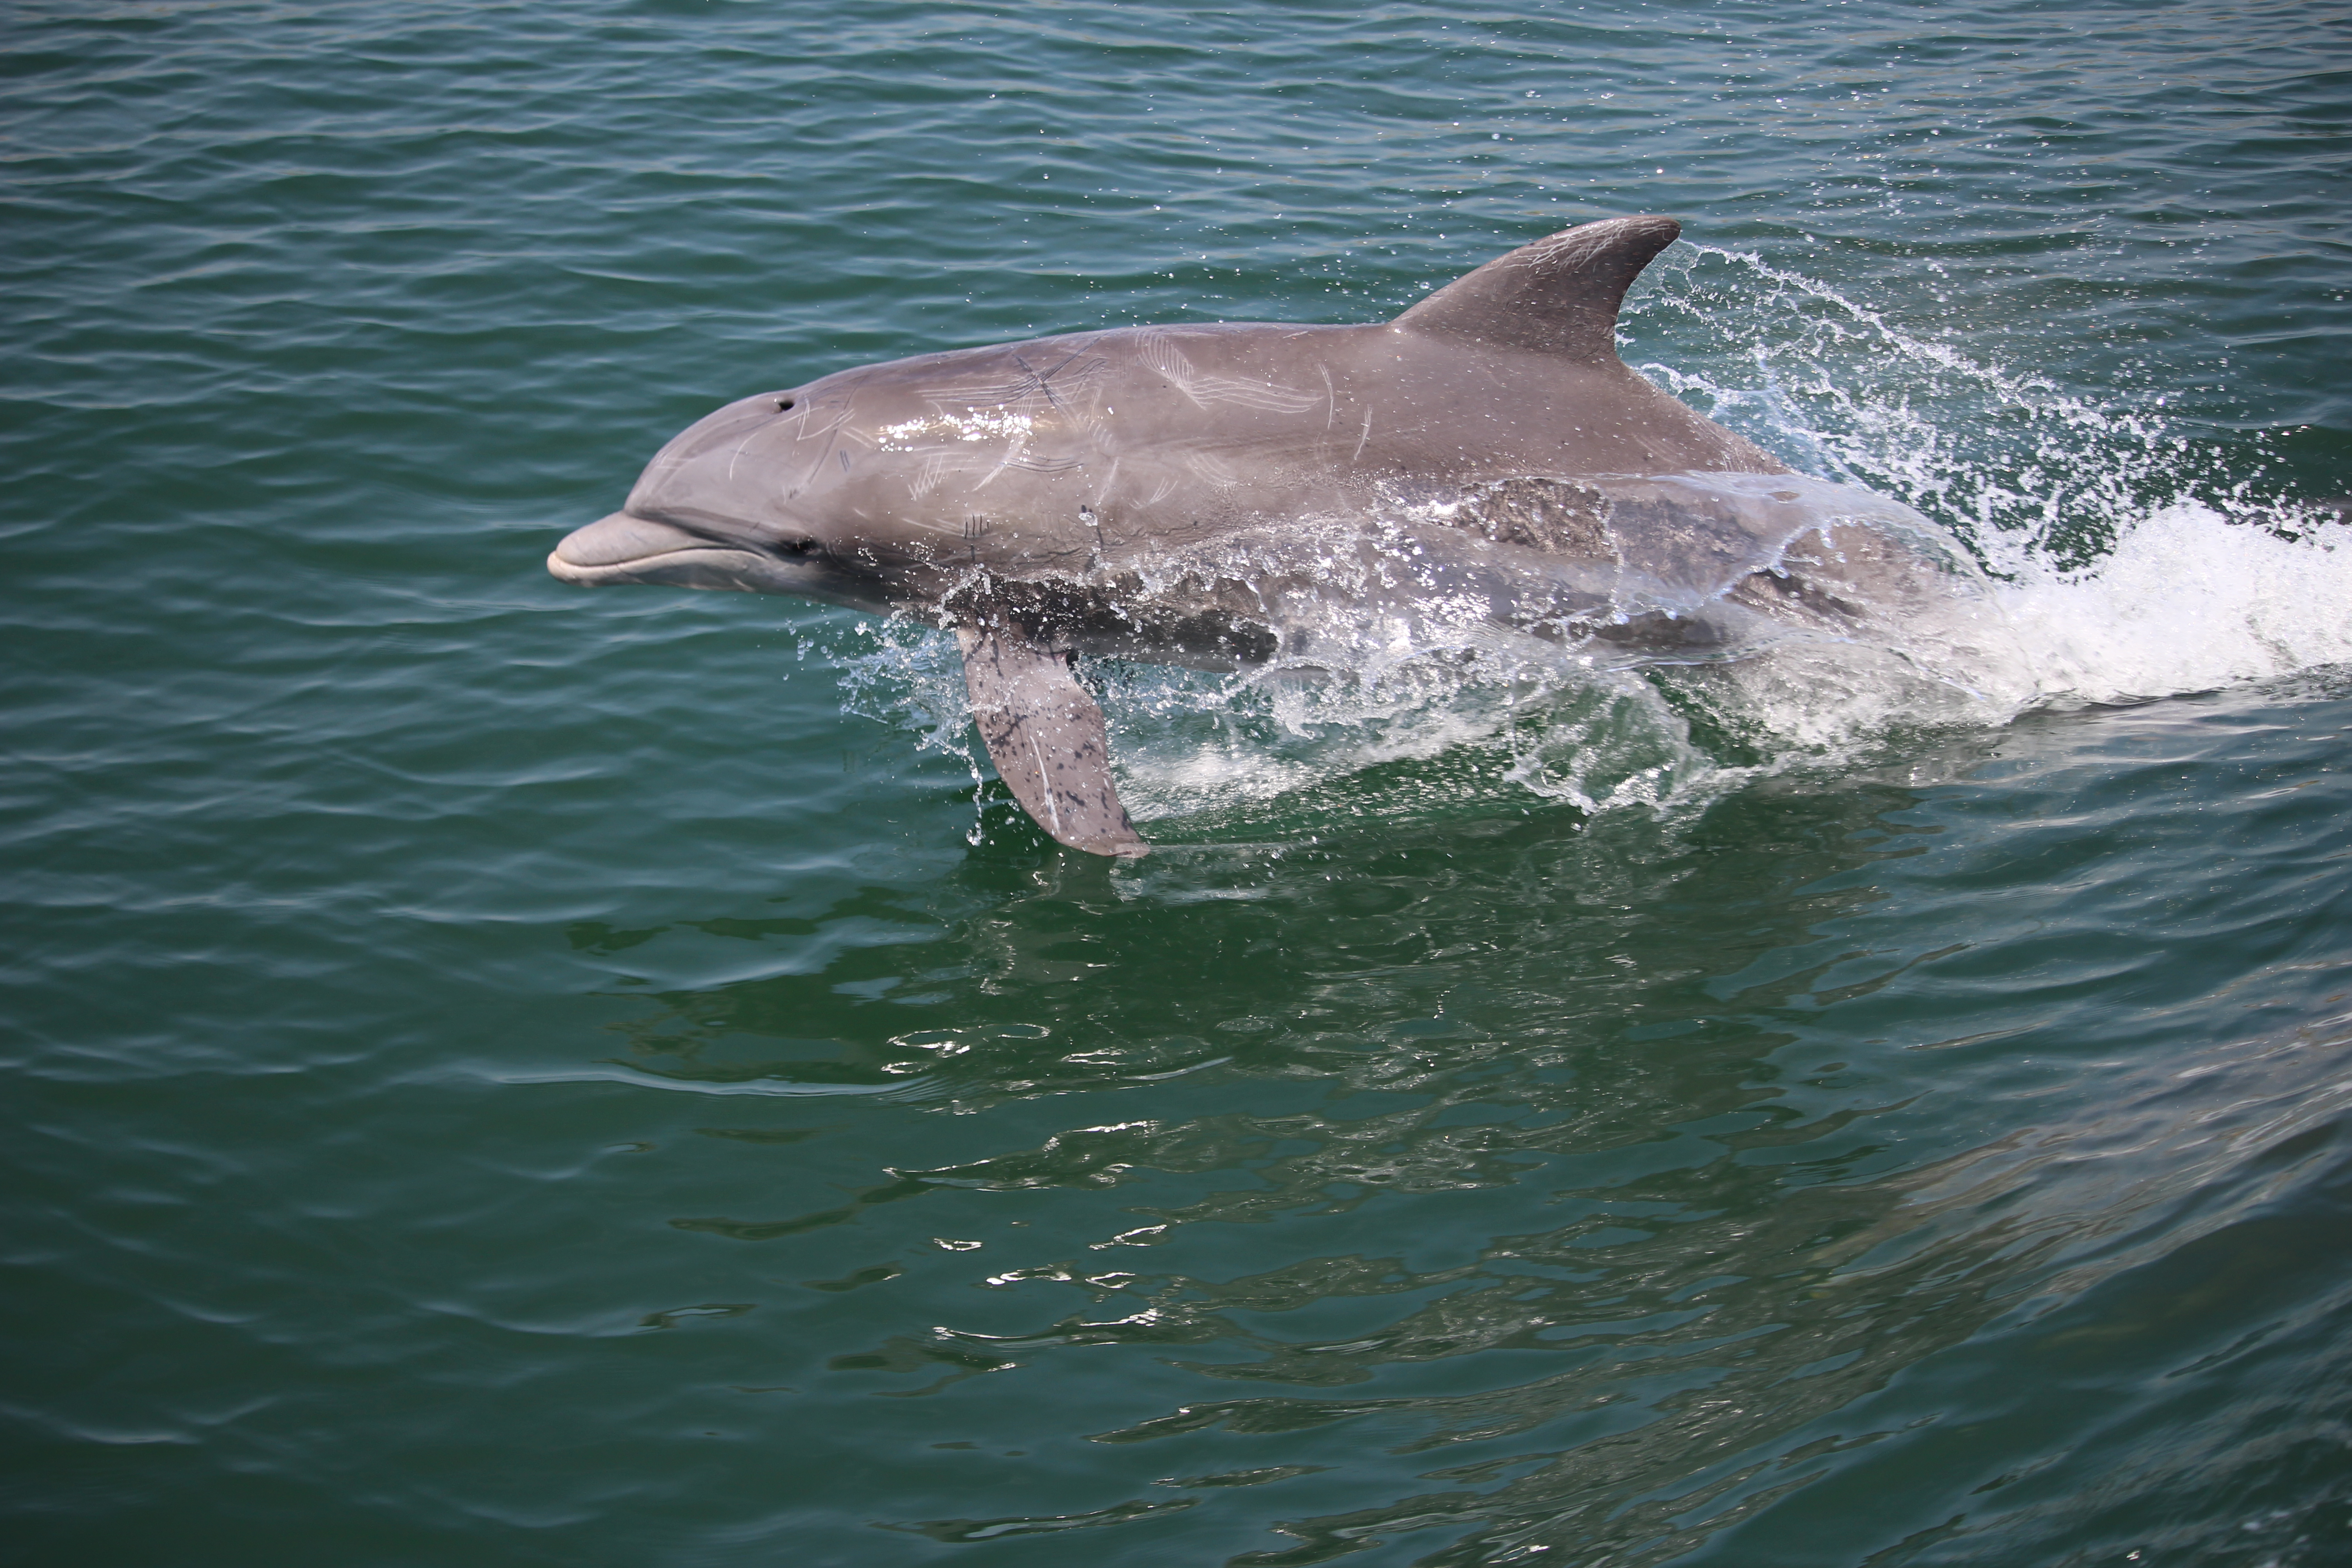 Dolphin leaping out of water